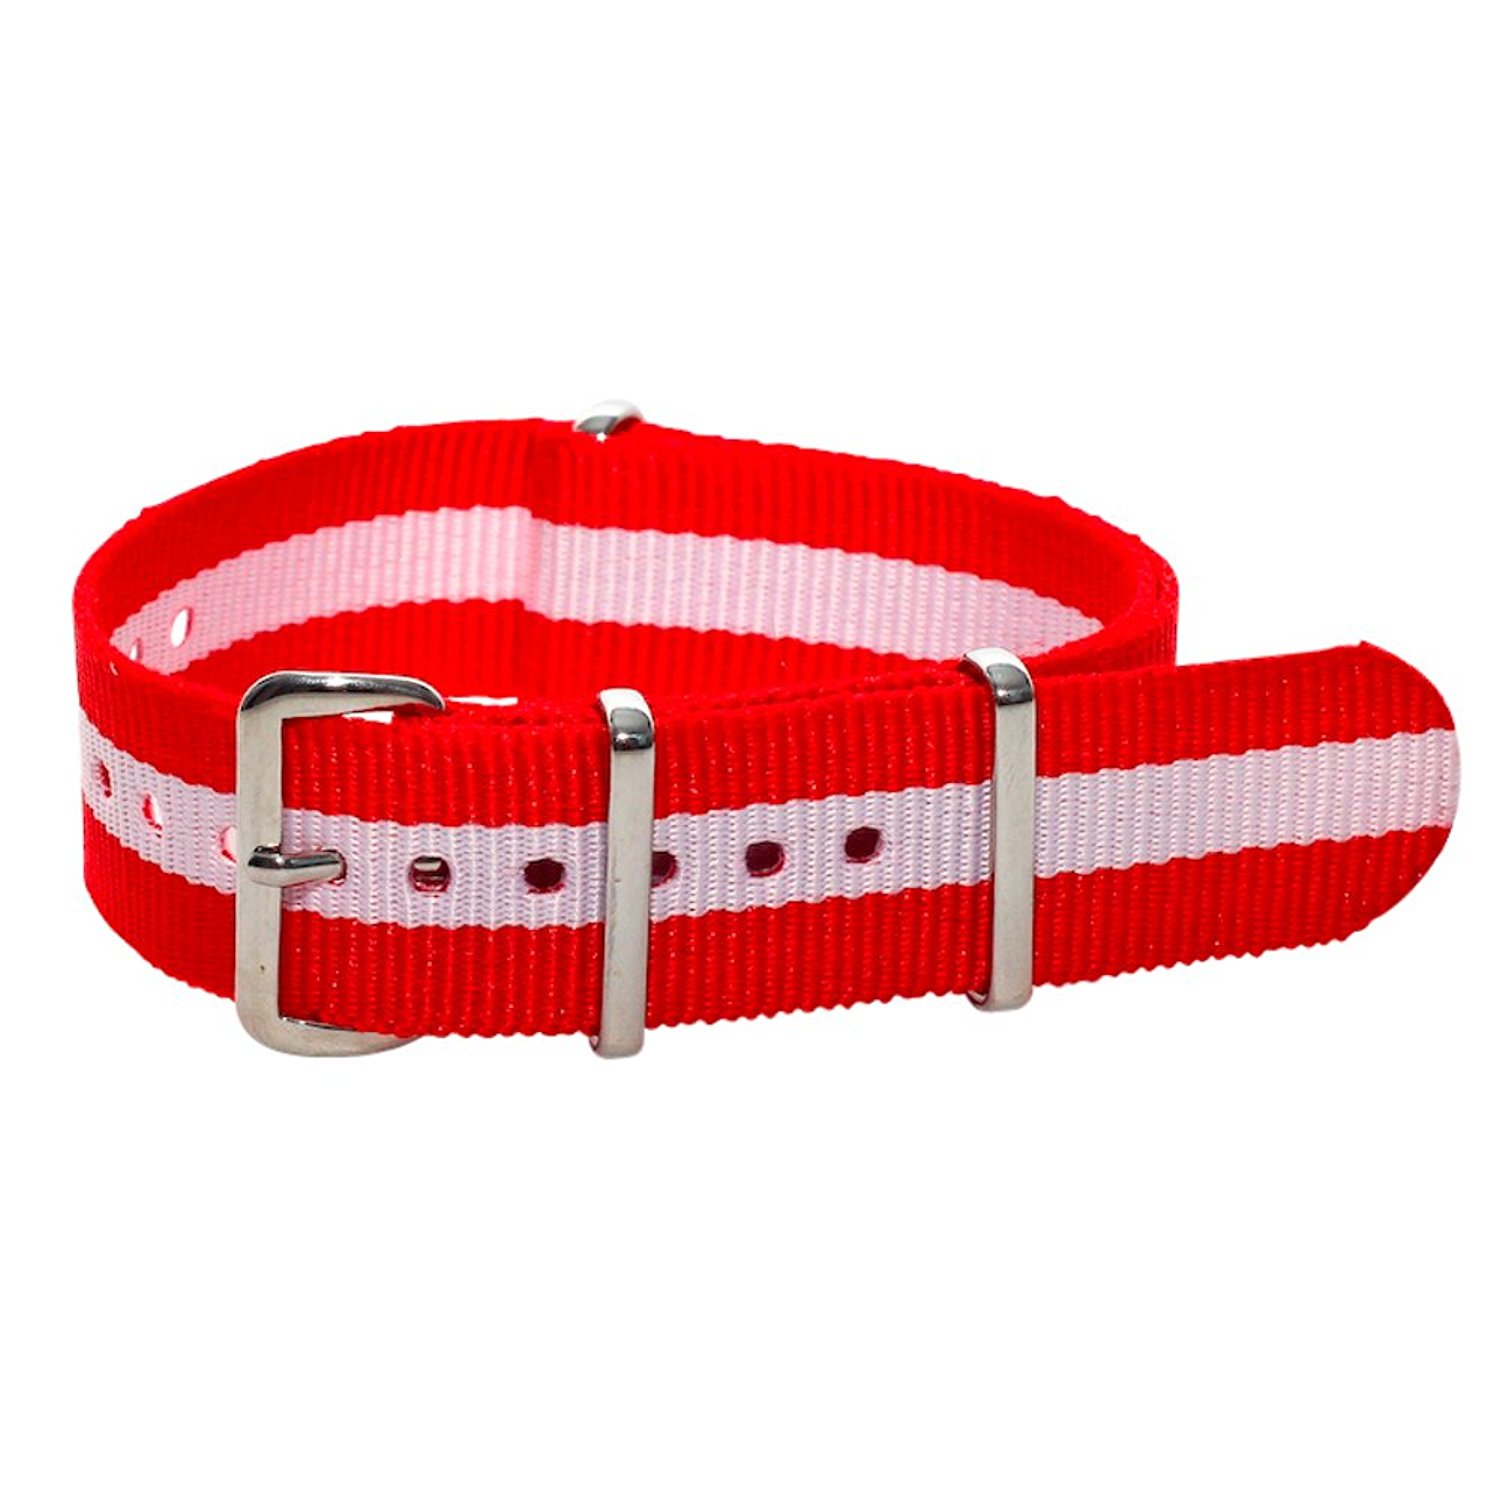 NATO G10 Nylon Premium Quality Replacement Watch Band Strap - 22mm / Swiss Flag Colors - FITS ALL BRAND WATCHES